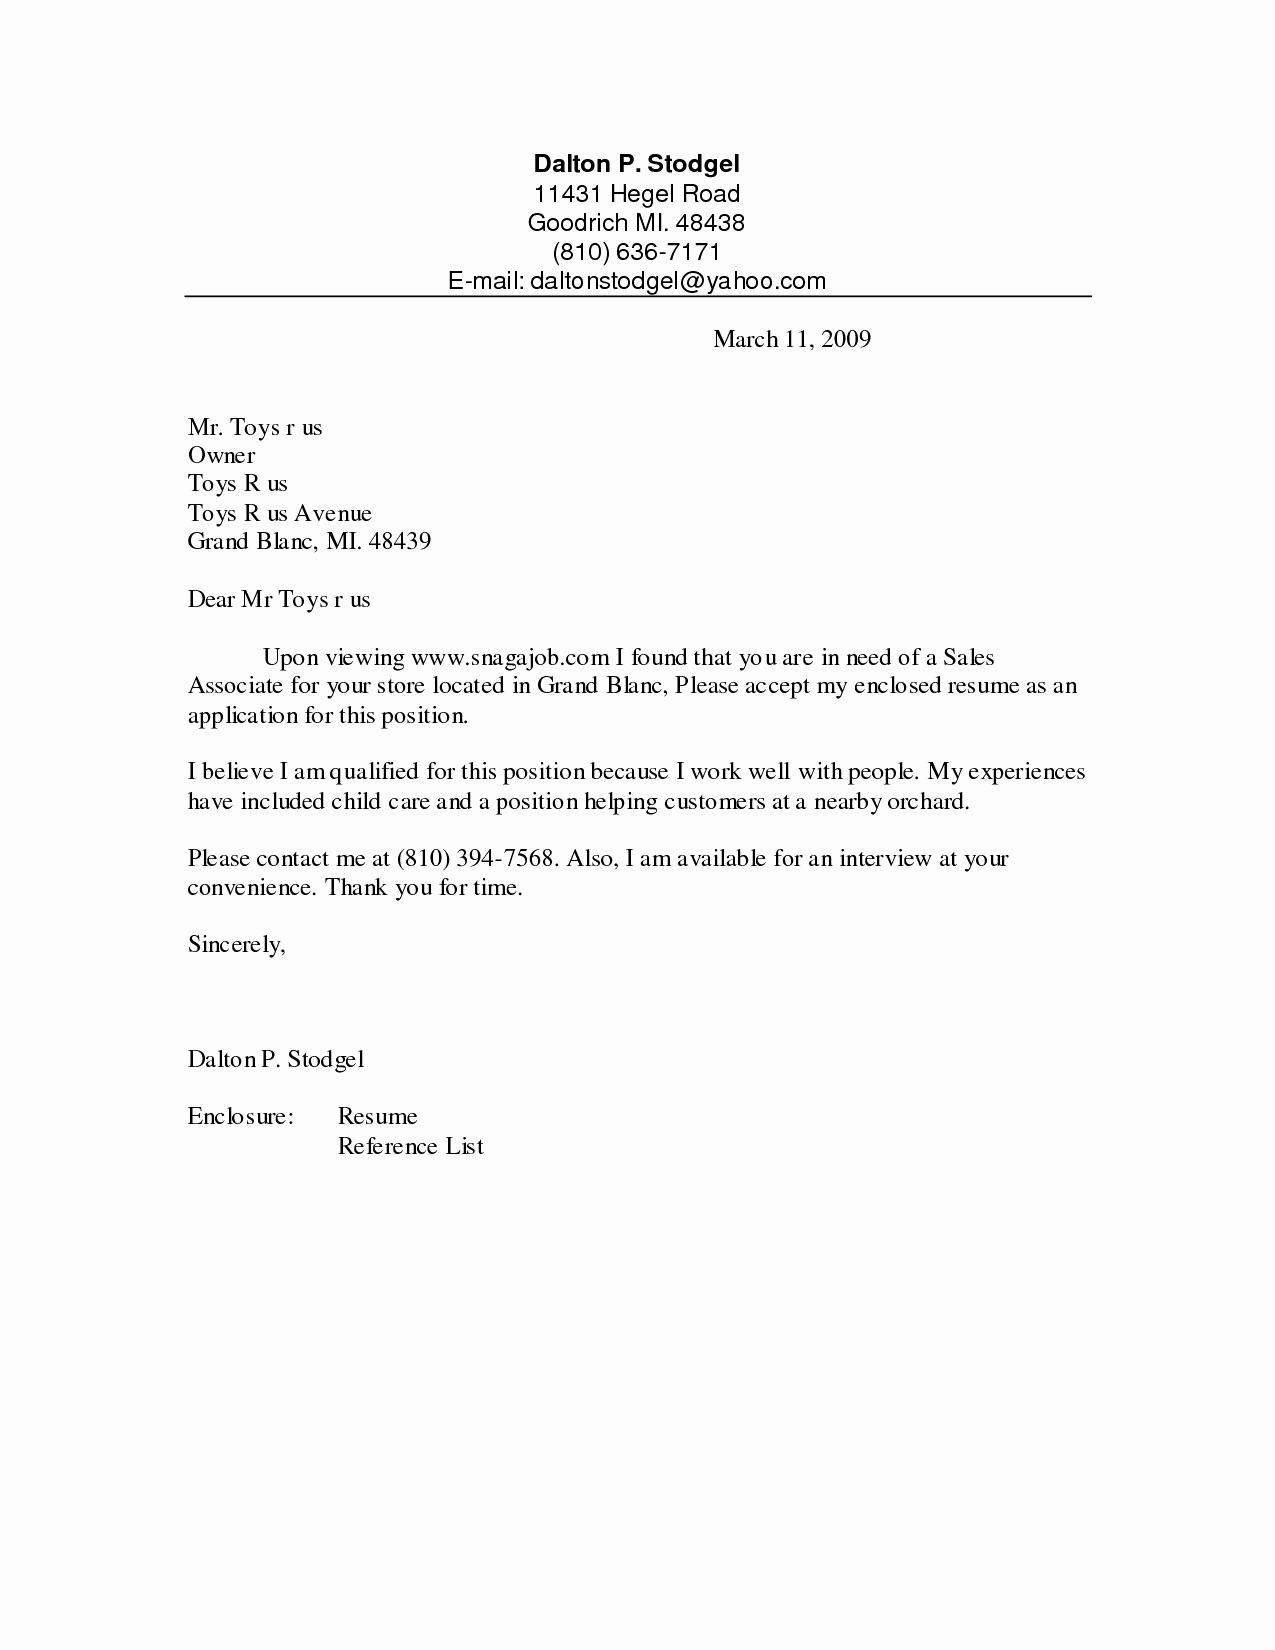 Cover Letter Template Retail Sales assistant - Cover Letter for Sales assistant Job Luxury Cover Letter for Grocery